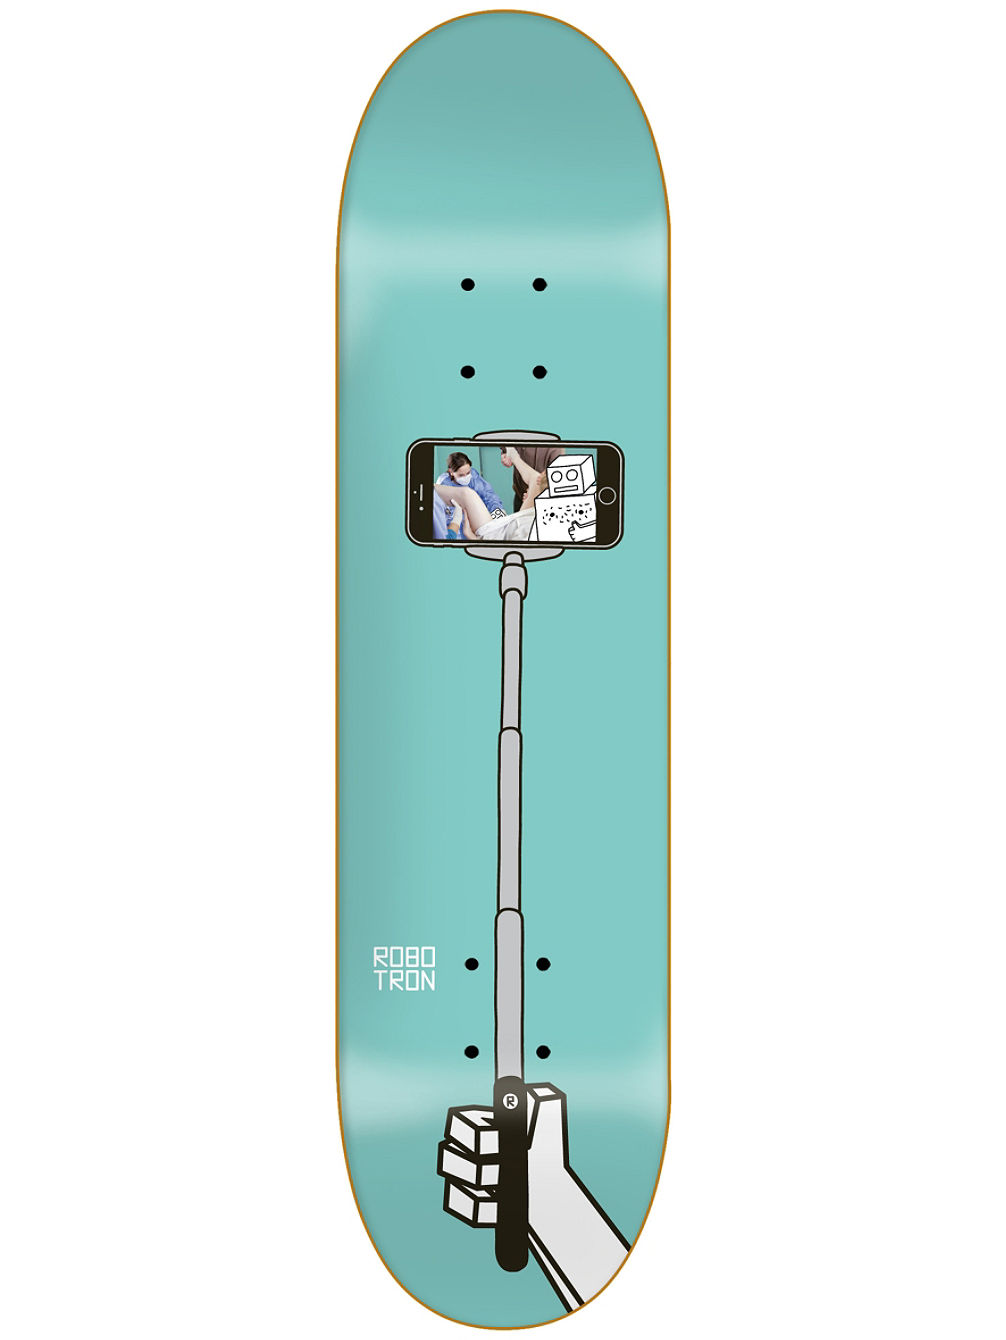 Selfie Stick Happy Birthday 8.1'' Skate Deck